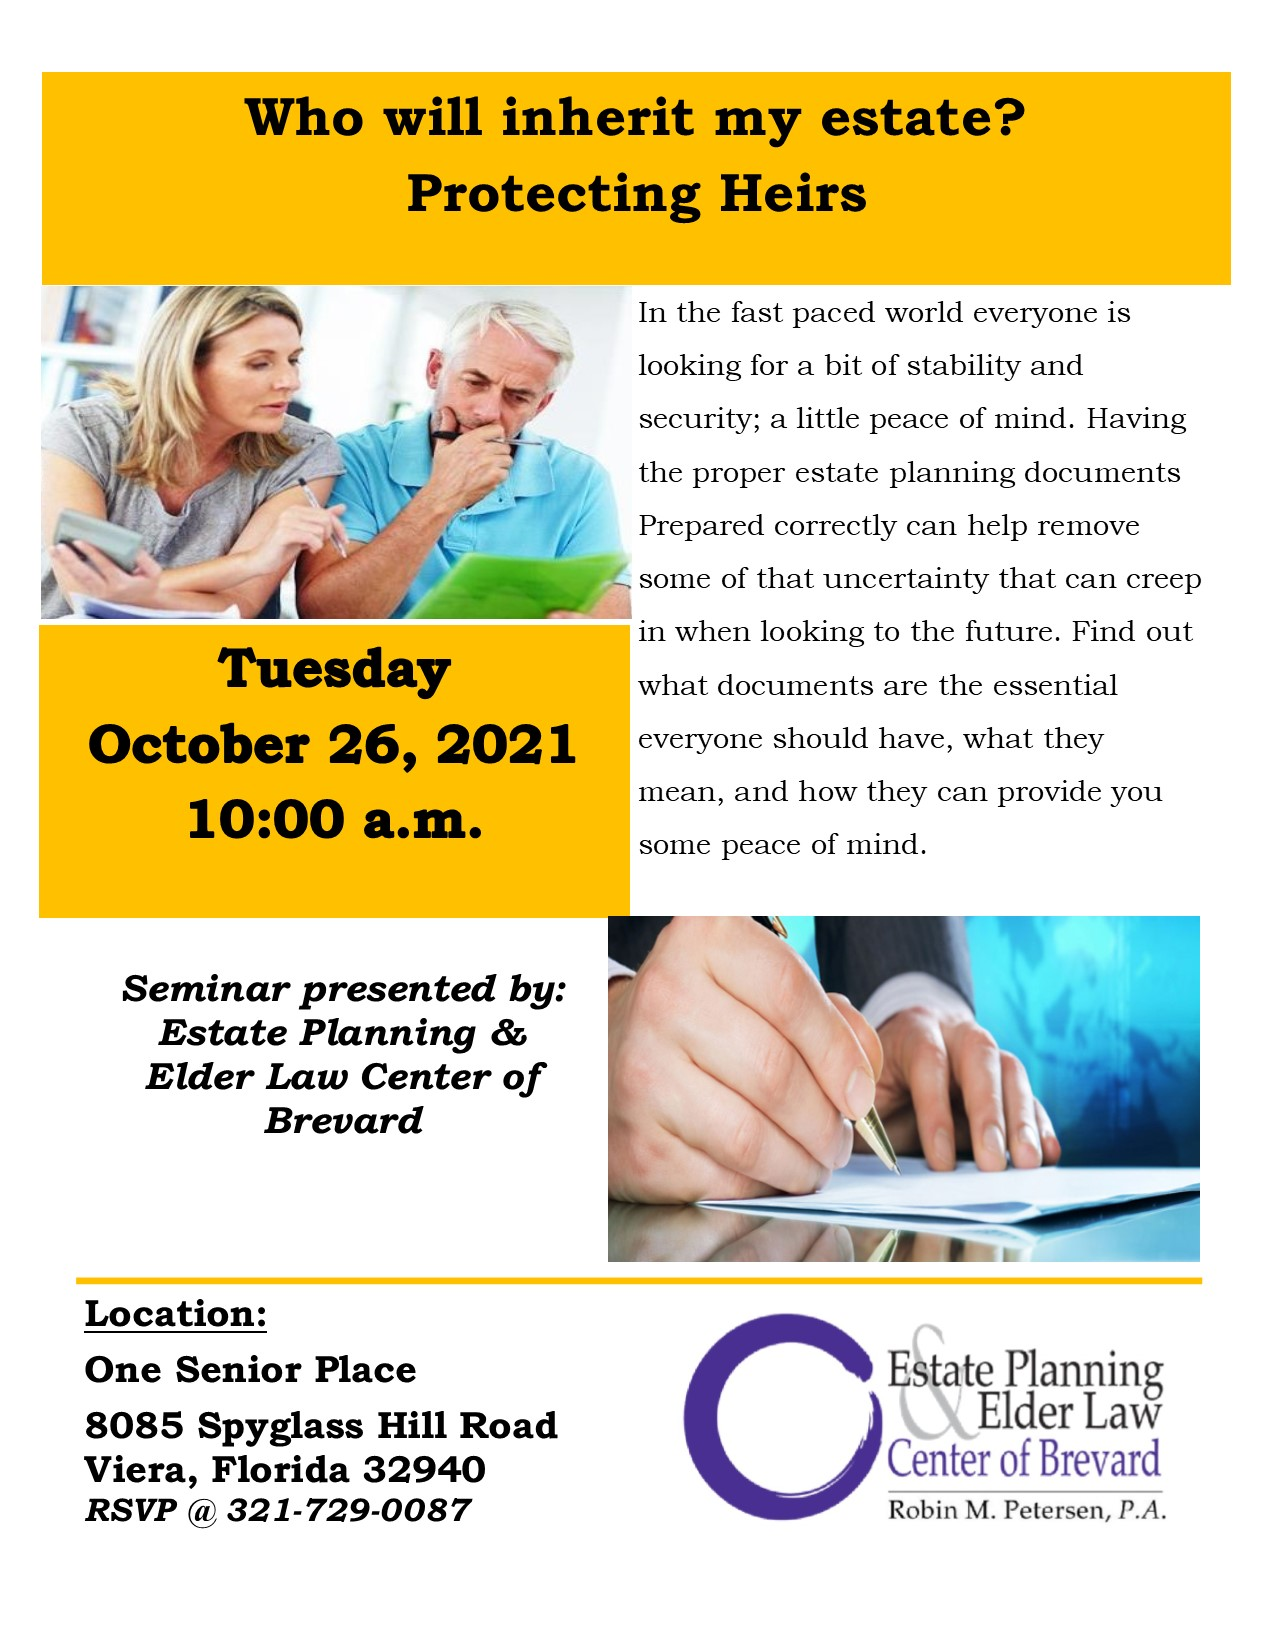 Who will inherit my estate? Protecting Heirs presented by Estate Planning and Elder Law Center of Brevard